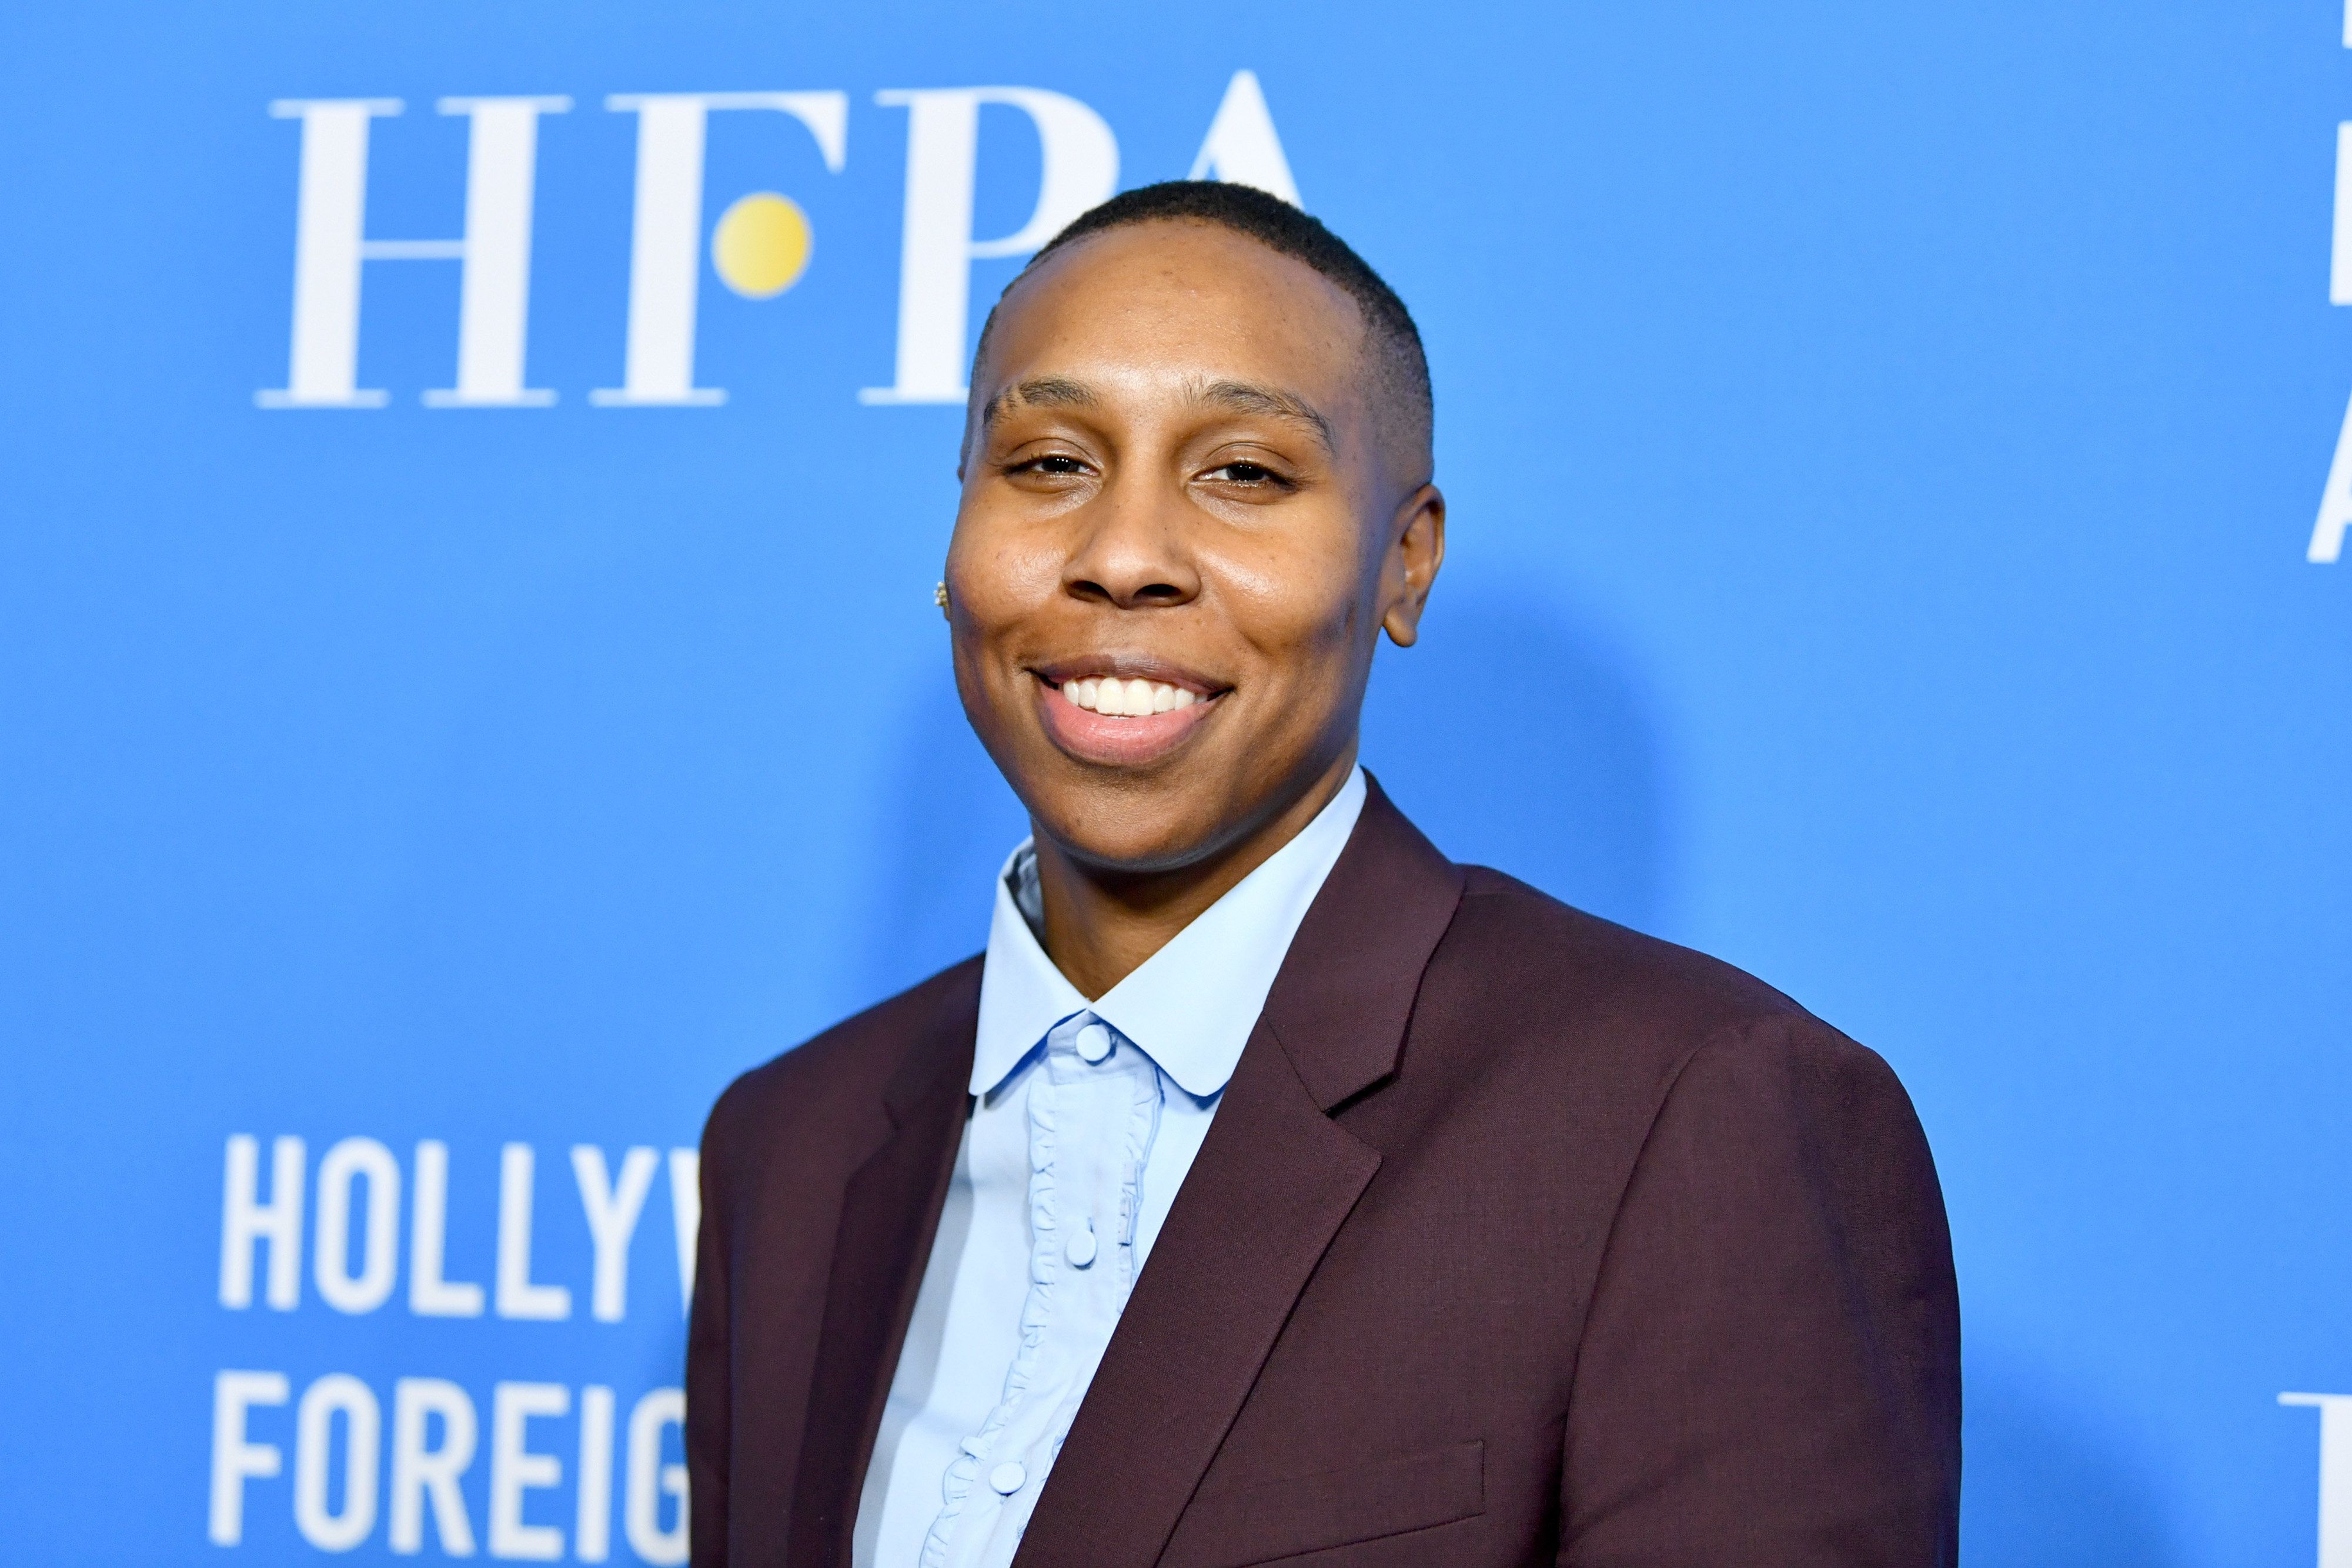 BEVERLY HILLS, CA - AUGUST 09:  Lena Waithe attends the Hollywood Foreign Press Association's Grants Banquet at The Beverly Hilton Hotel on August 9, 2018 in Beverly Hills, California.  (Photo by Emma McIntyre/Getty Images)